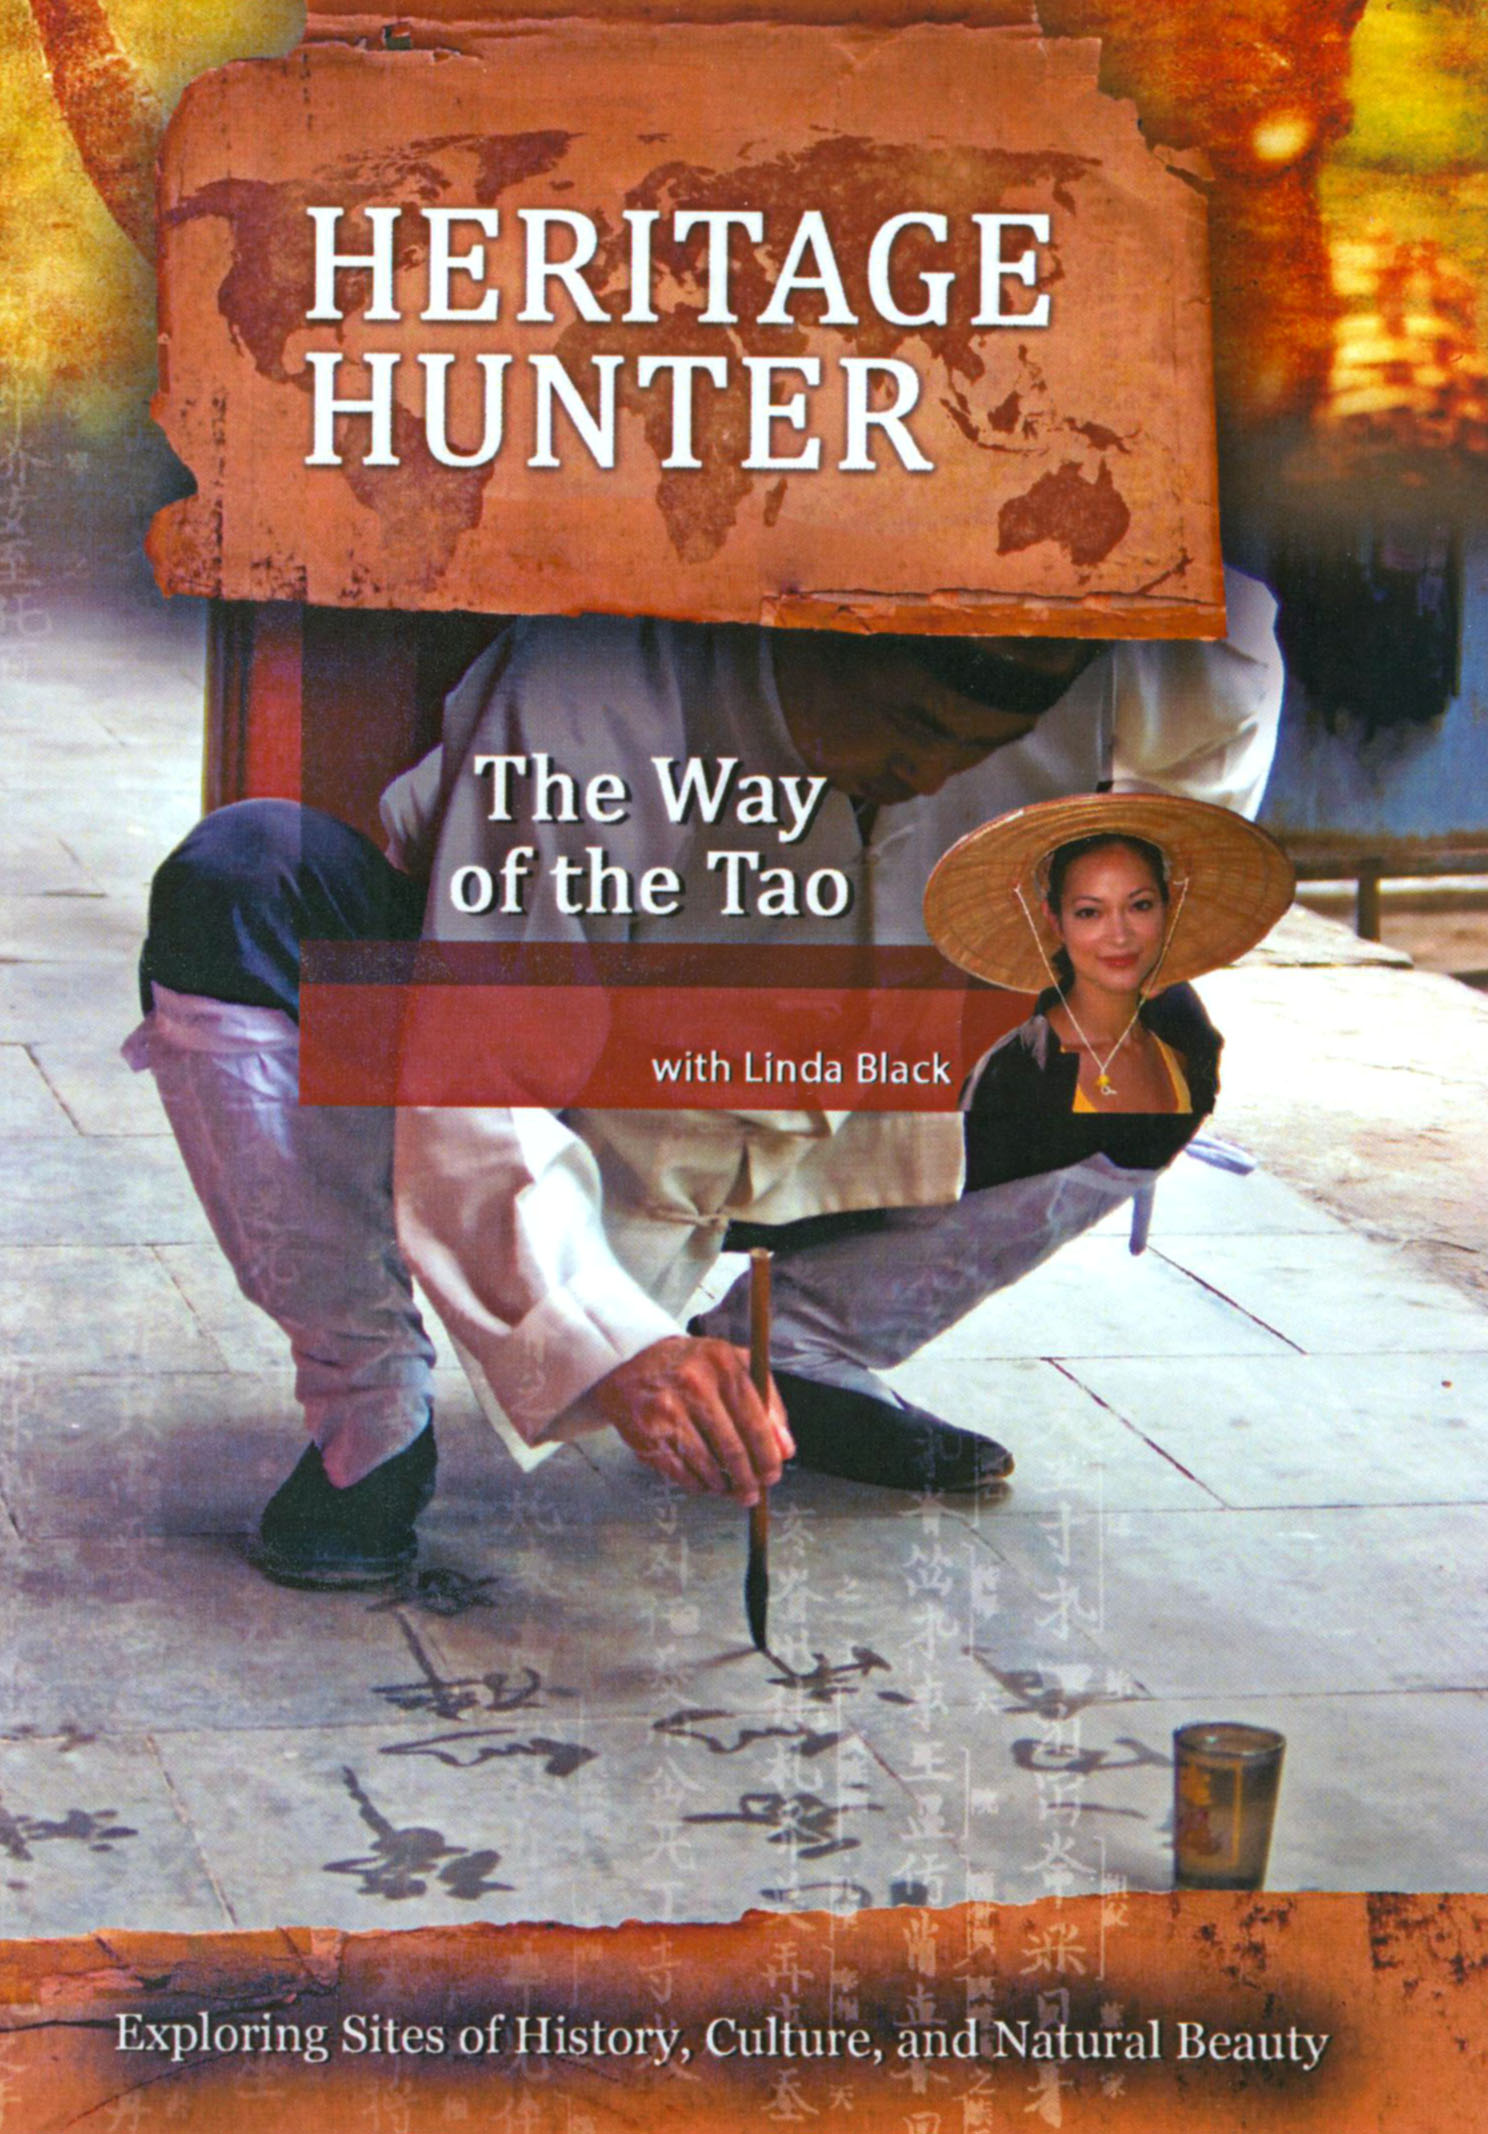 Heritage Hunter: The Way of the Tao